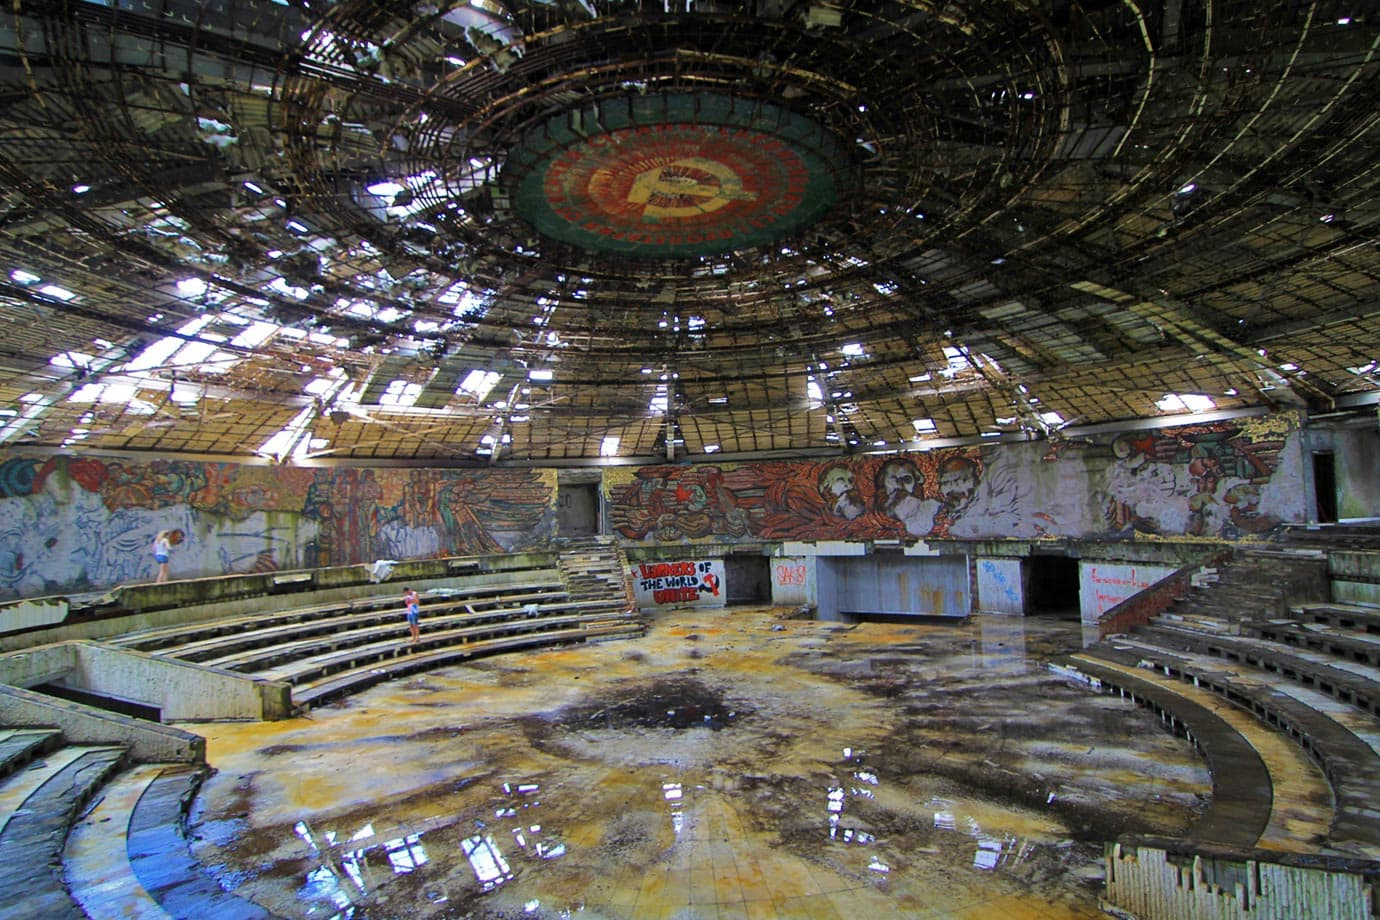 The main auditorium, much like the rest of Buzludzha, is in complete disrepair with rubble and glass on the floor